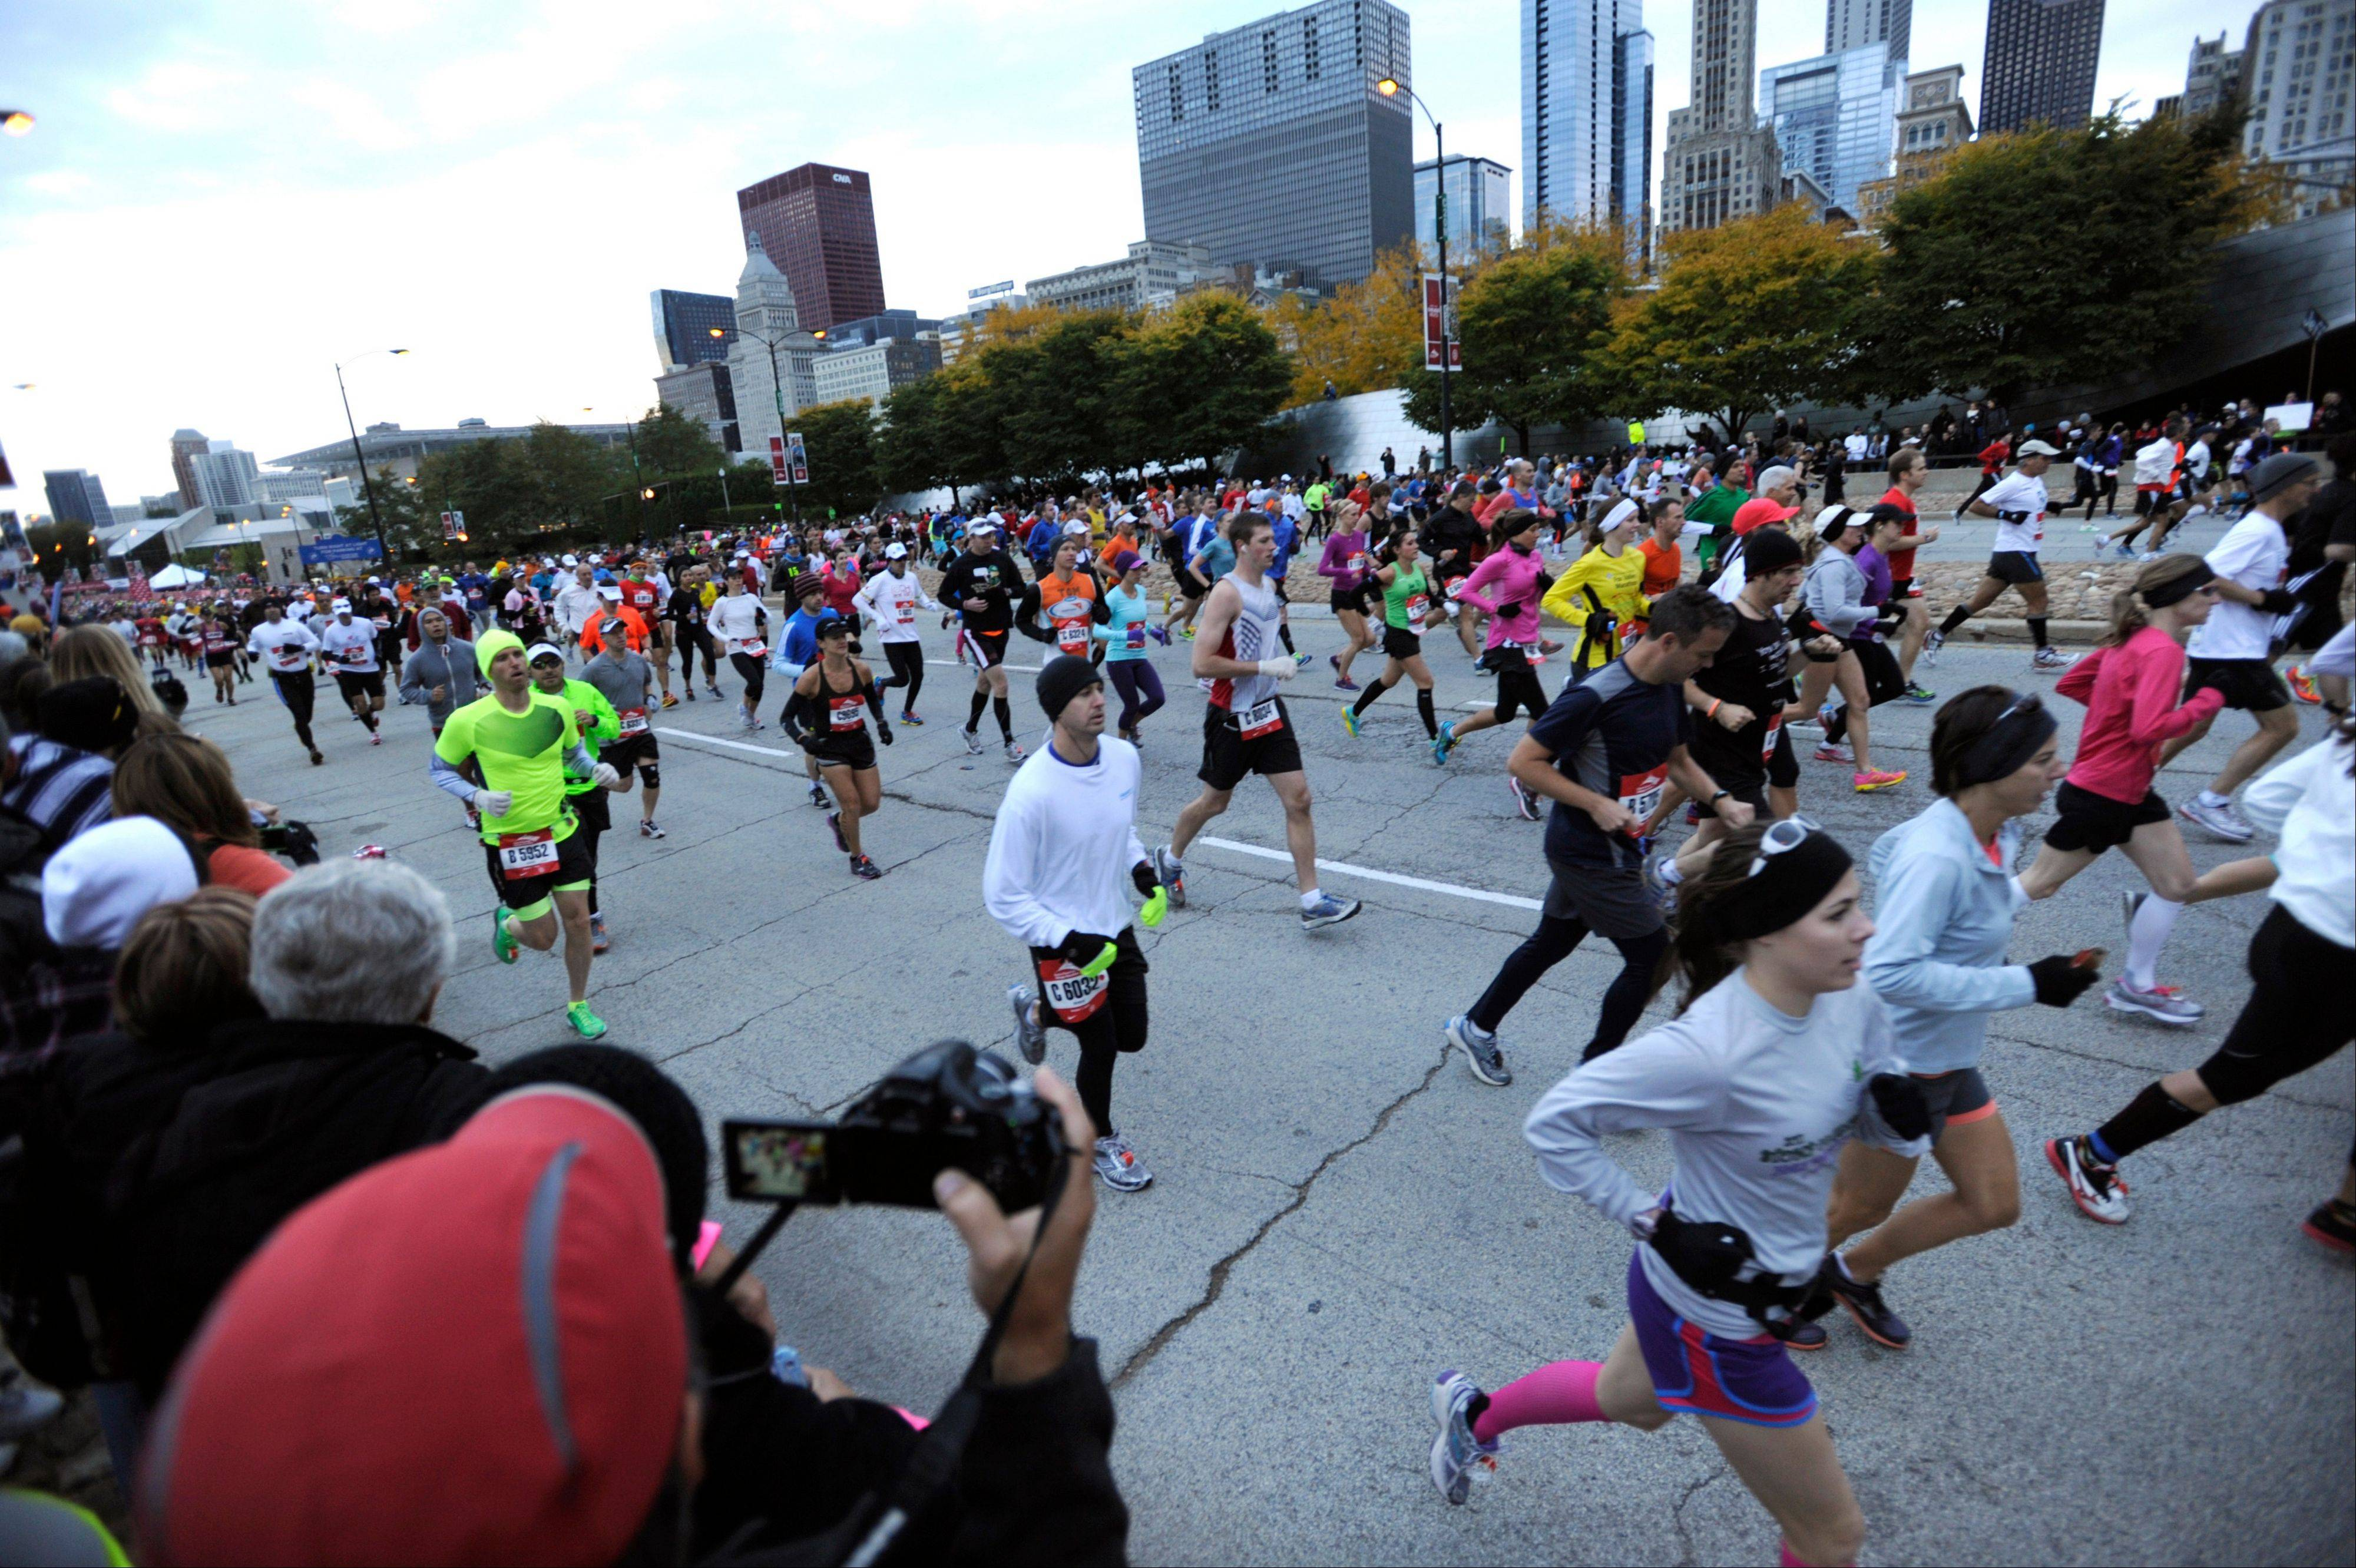 Tight security promised at Sunday's Chicago Marathon